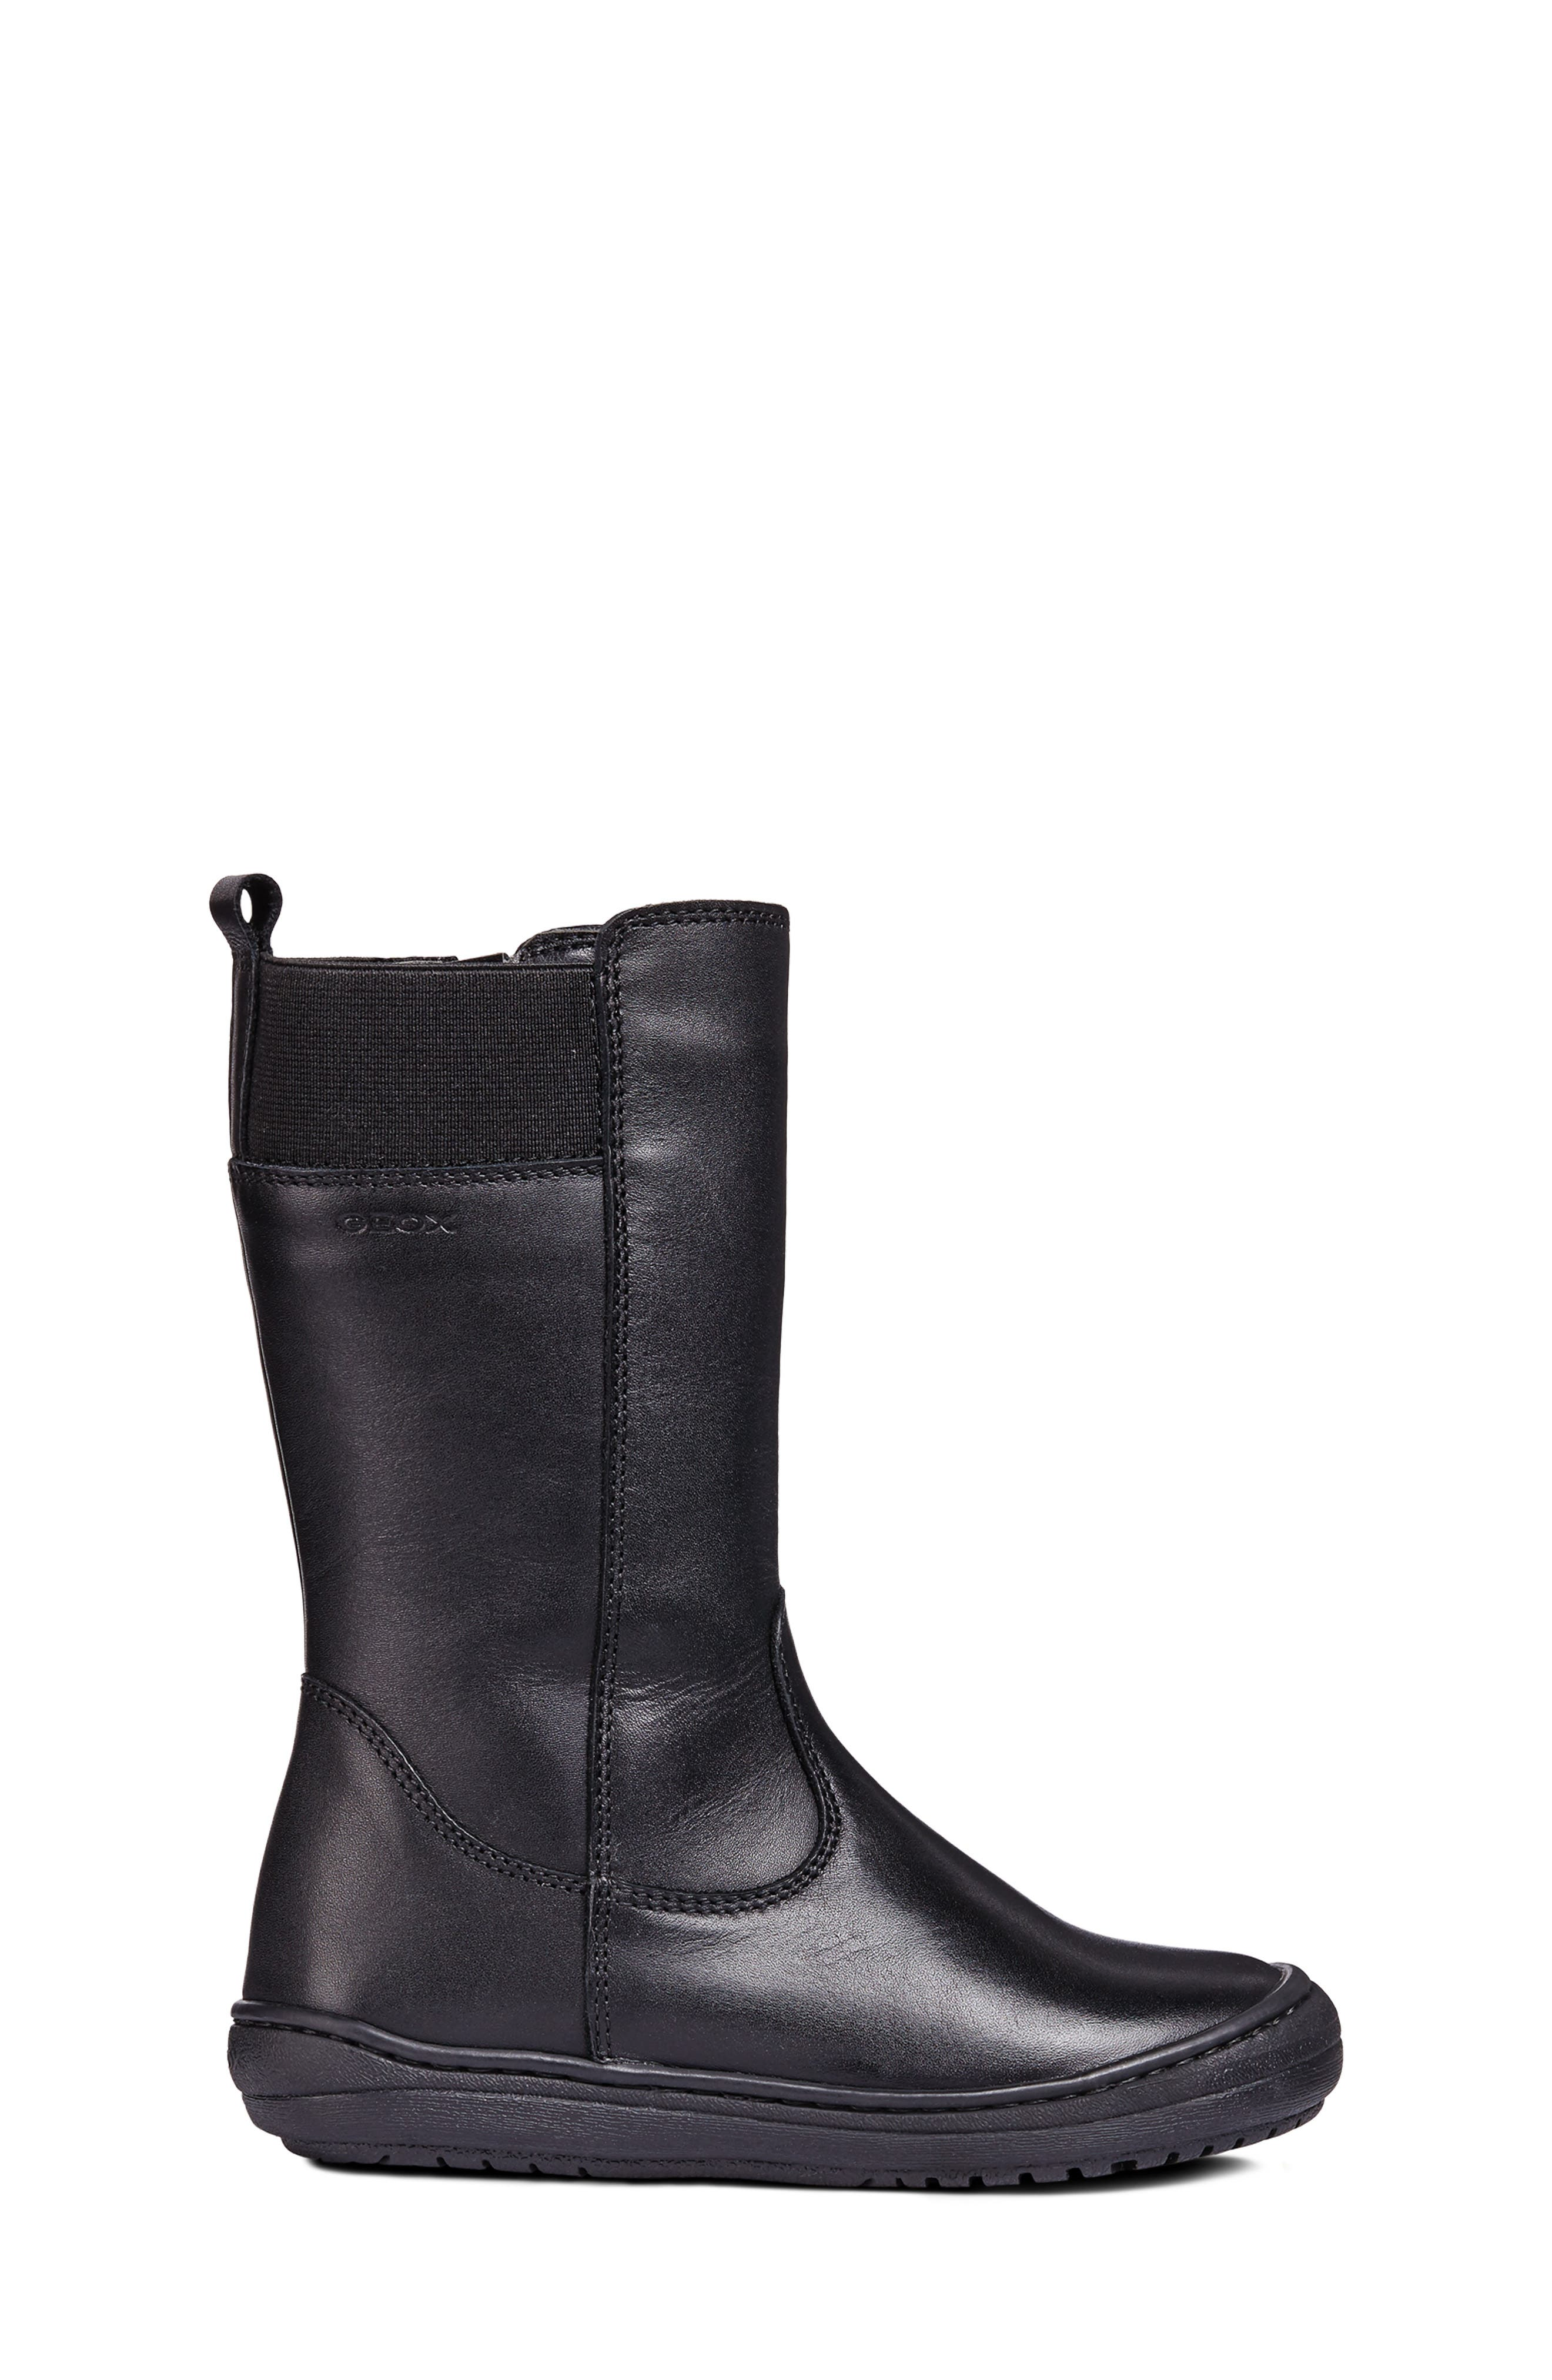 Hadriel Boot,                             Alternate thumbnail 3, color,                             BLACK